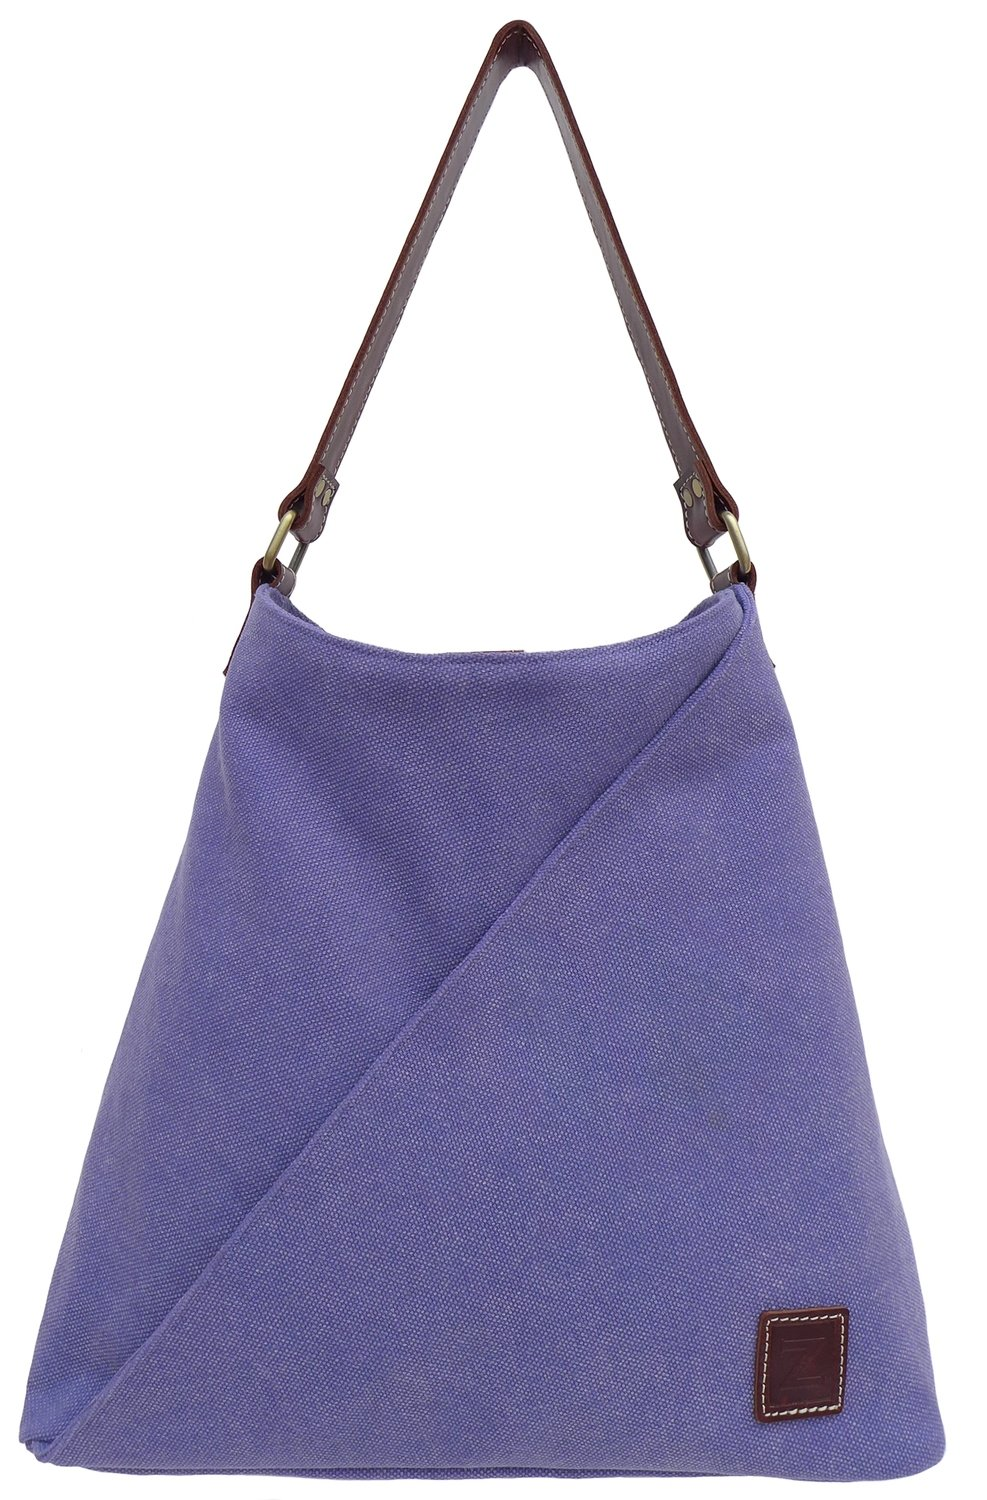 Stone-washed canvas and leather tote bag (light blue)